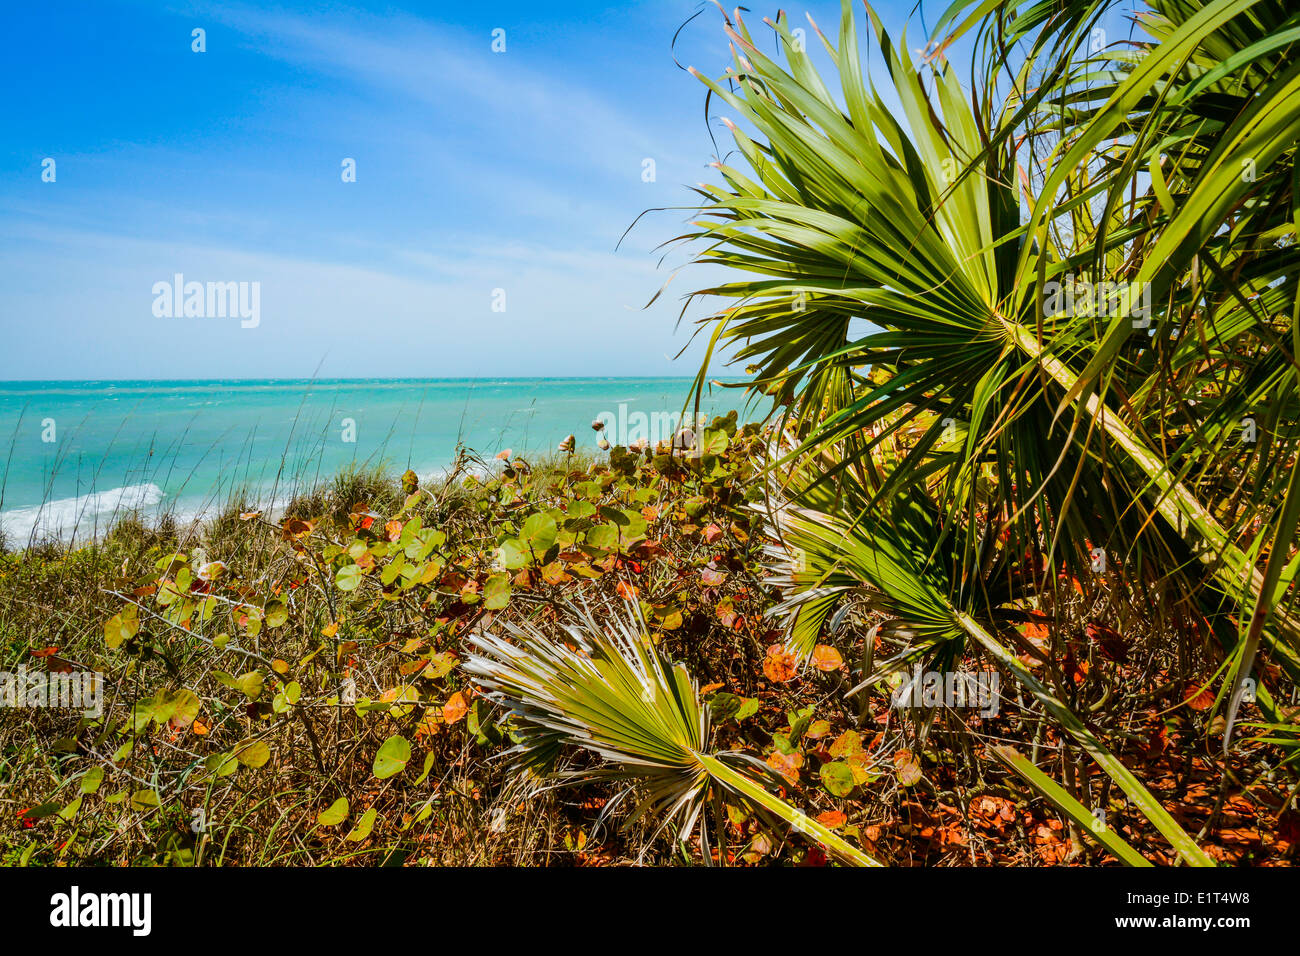 Lovely coastal vegetation enhances the view of the blue-green tranquil water on the outstretched horizon ahead - Stock Image